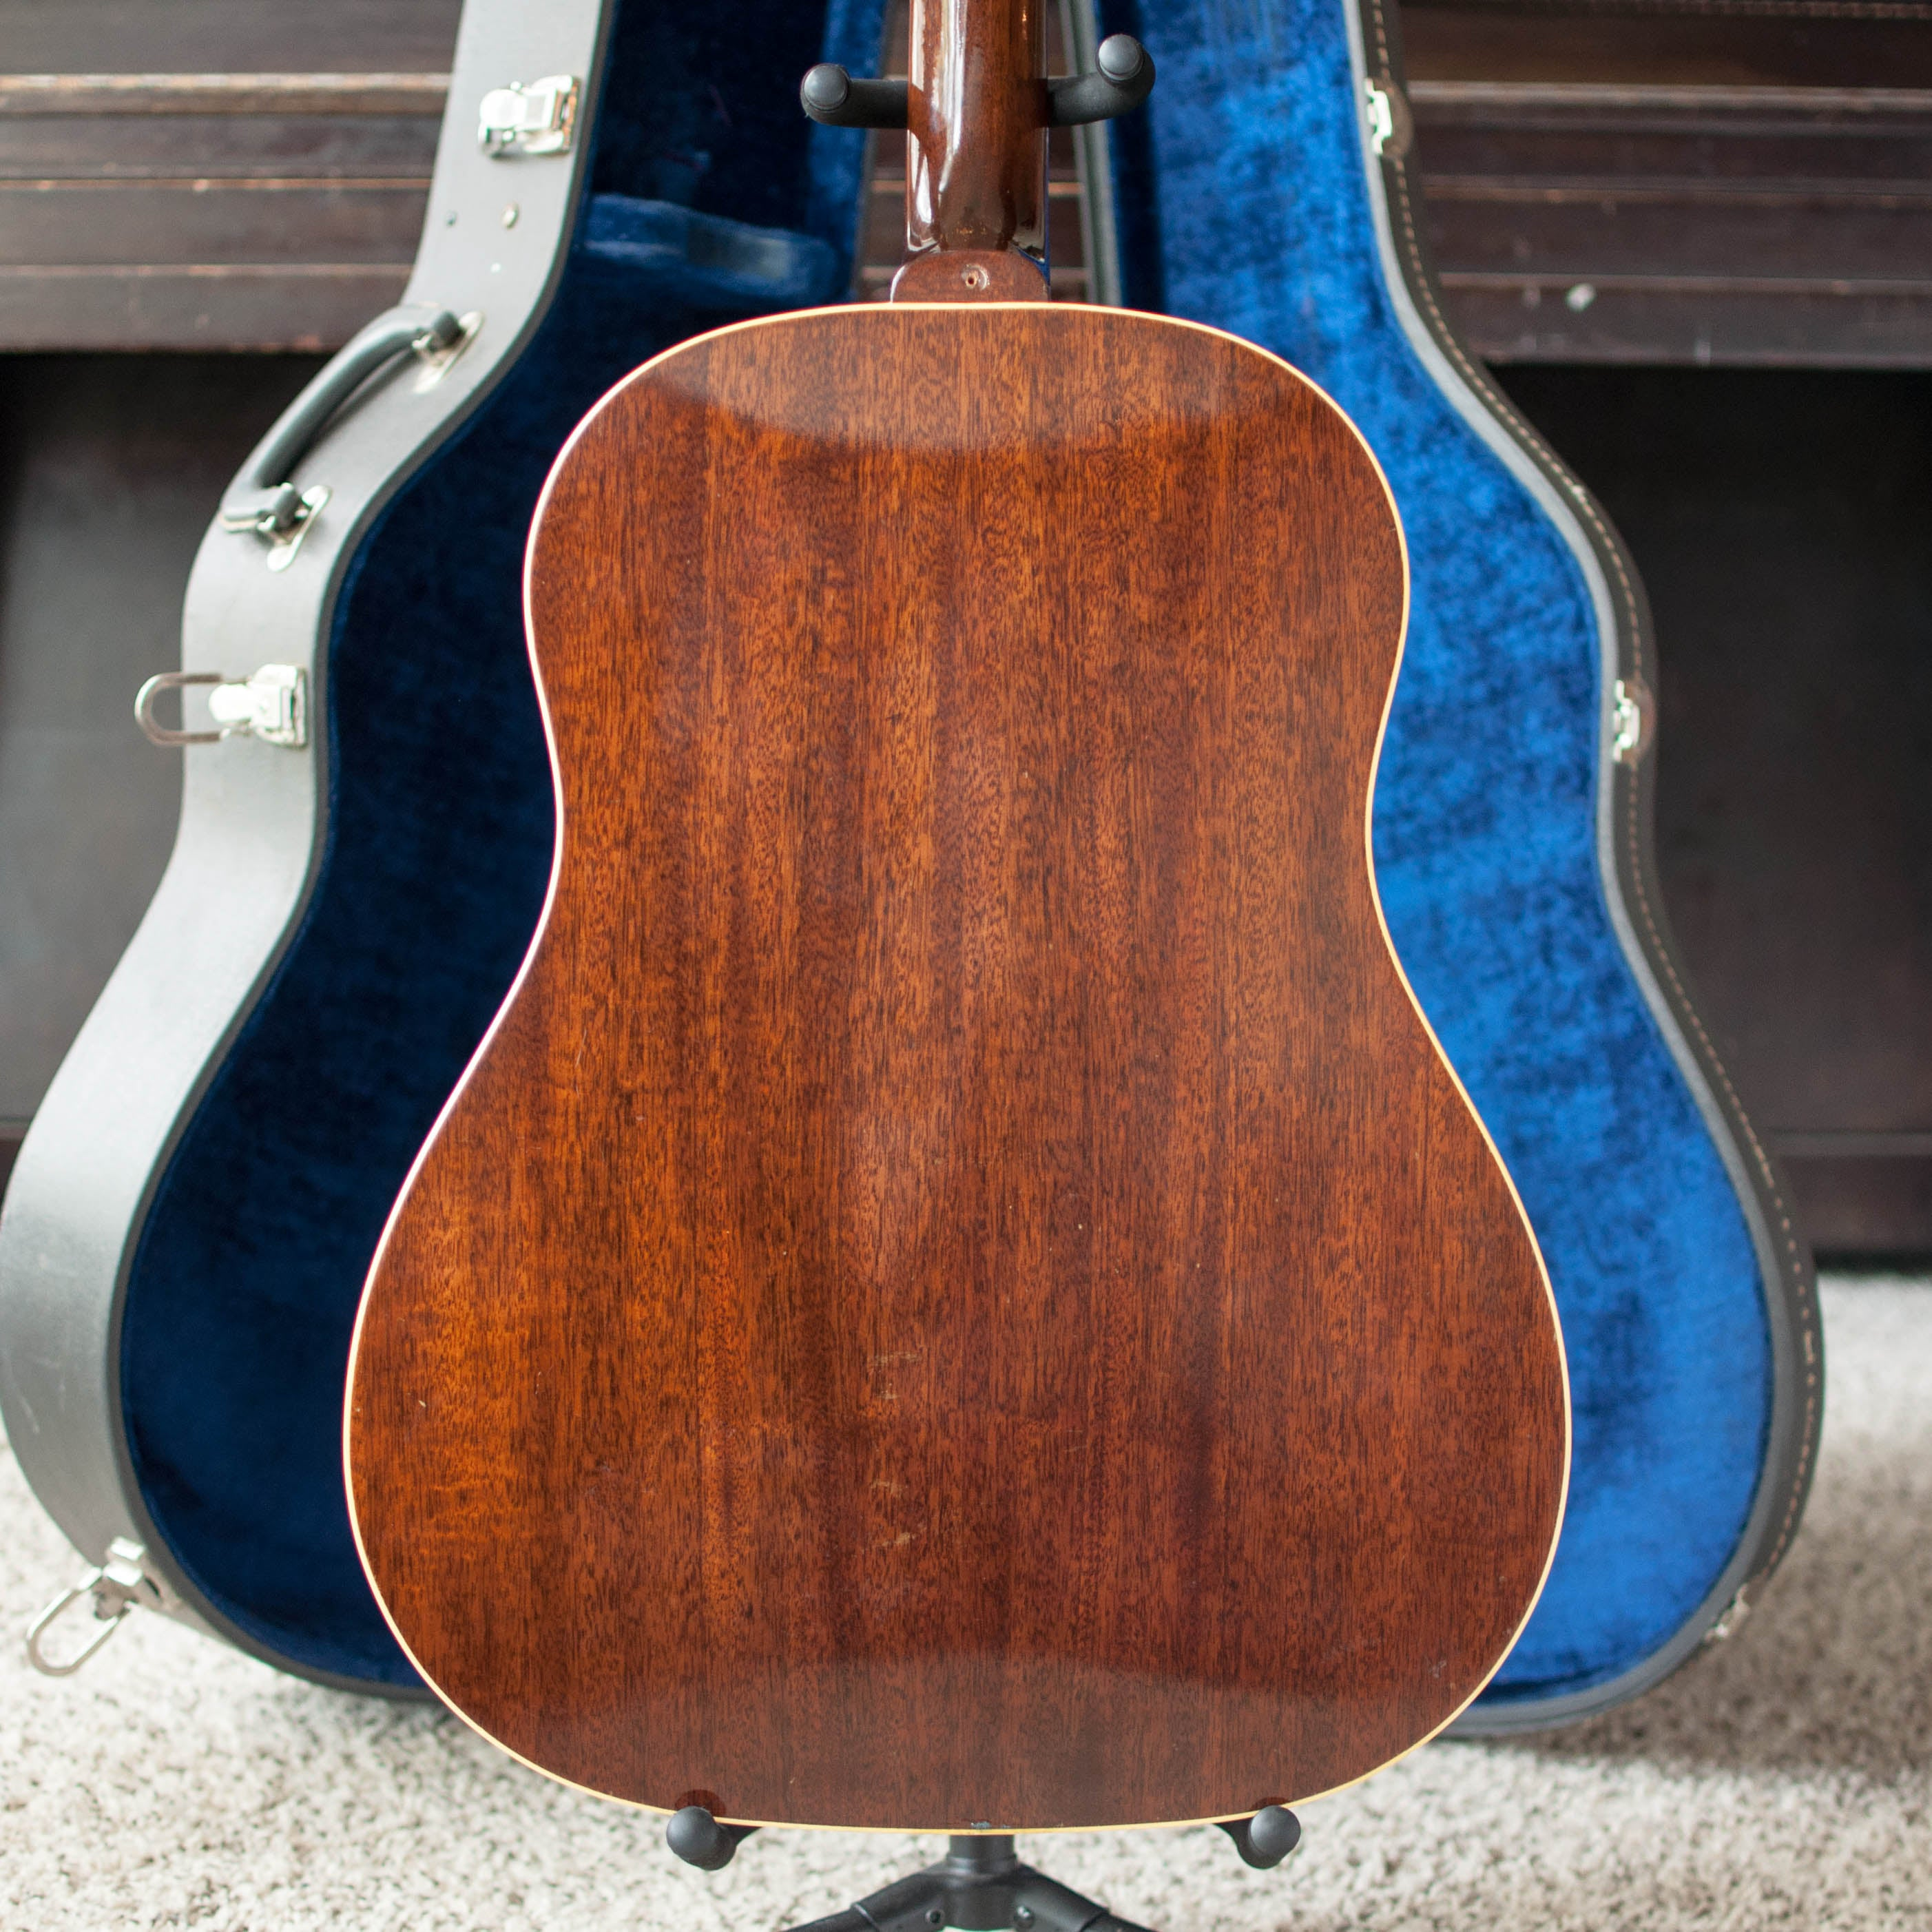 Mahogany back, vintage 1964 Epiphone FT-79 Texan